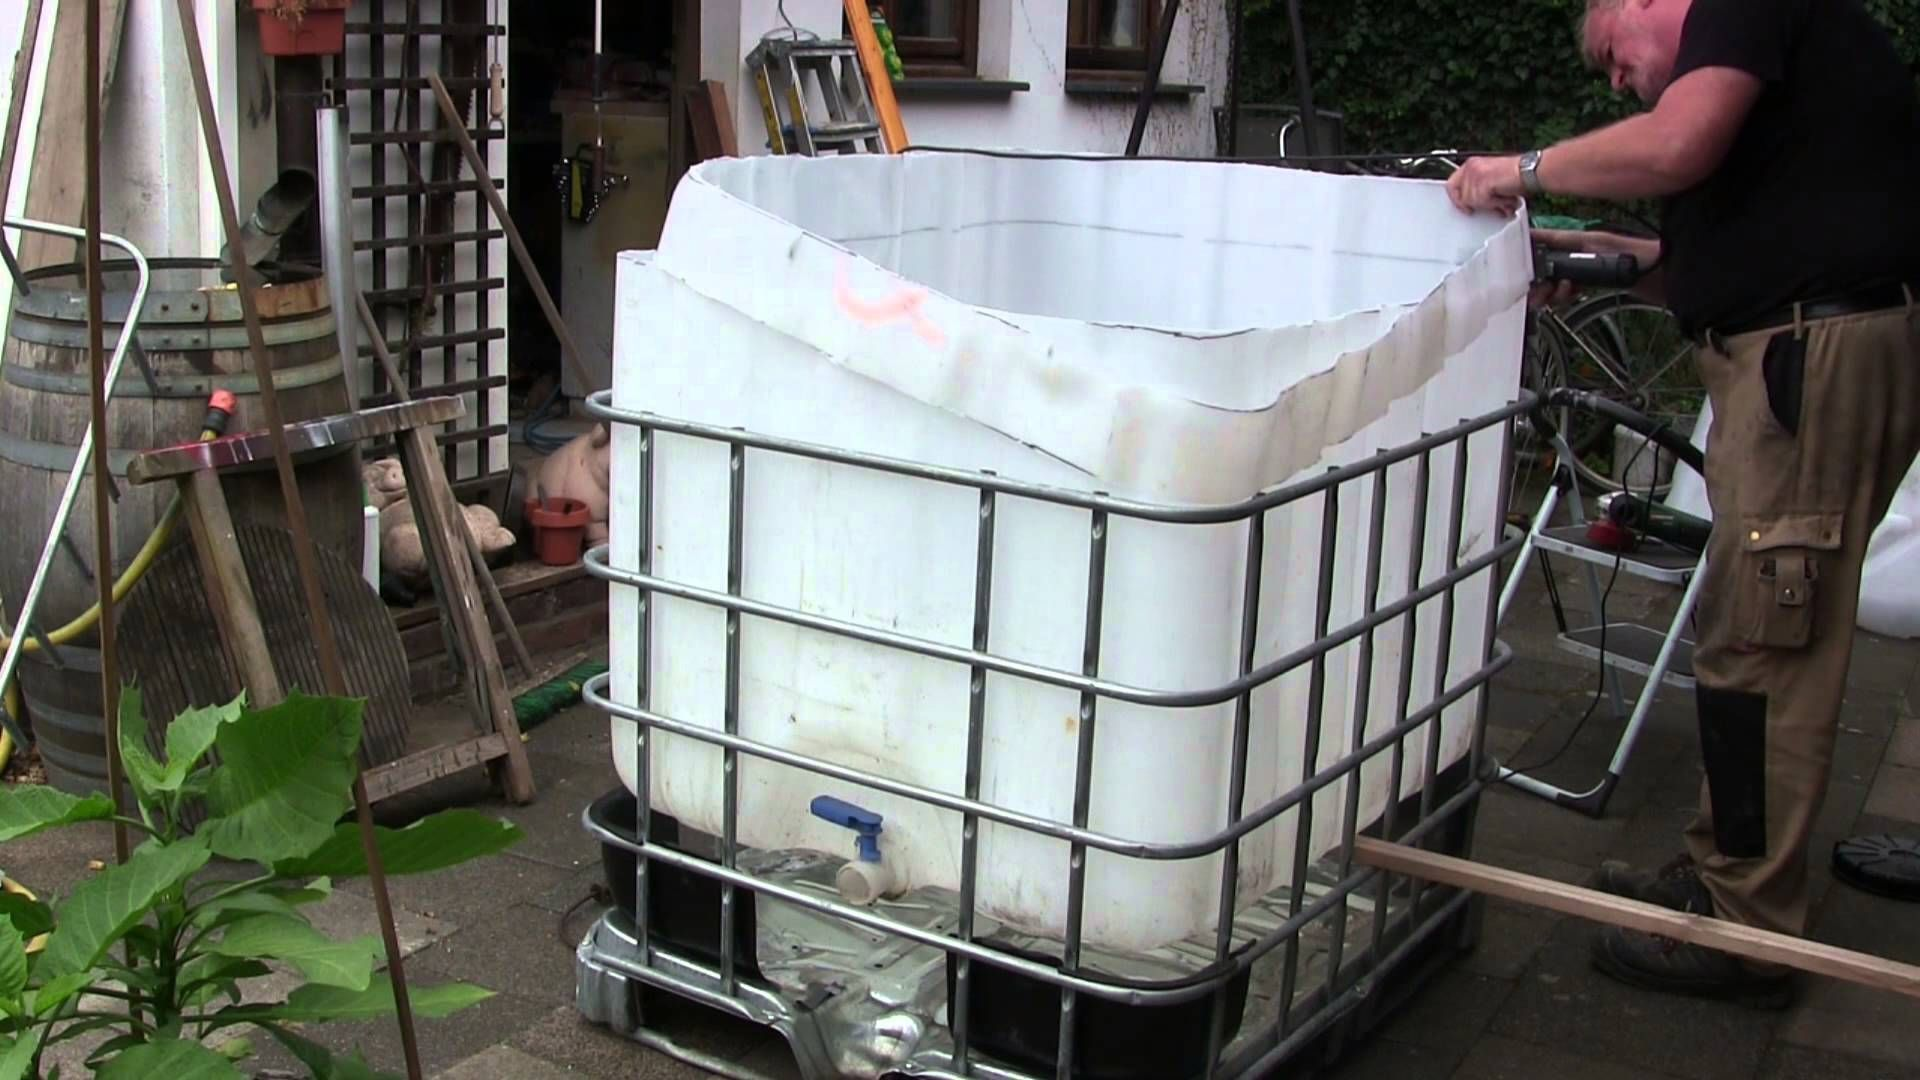 Poolheizung Diy Video Pool Aus Ibc Tank Container Selber Bauen So